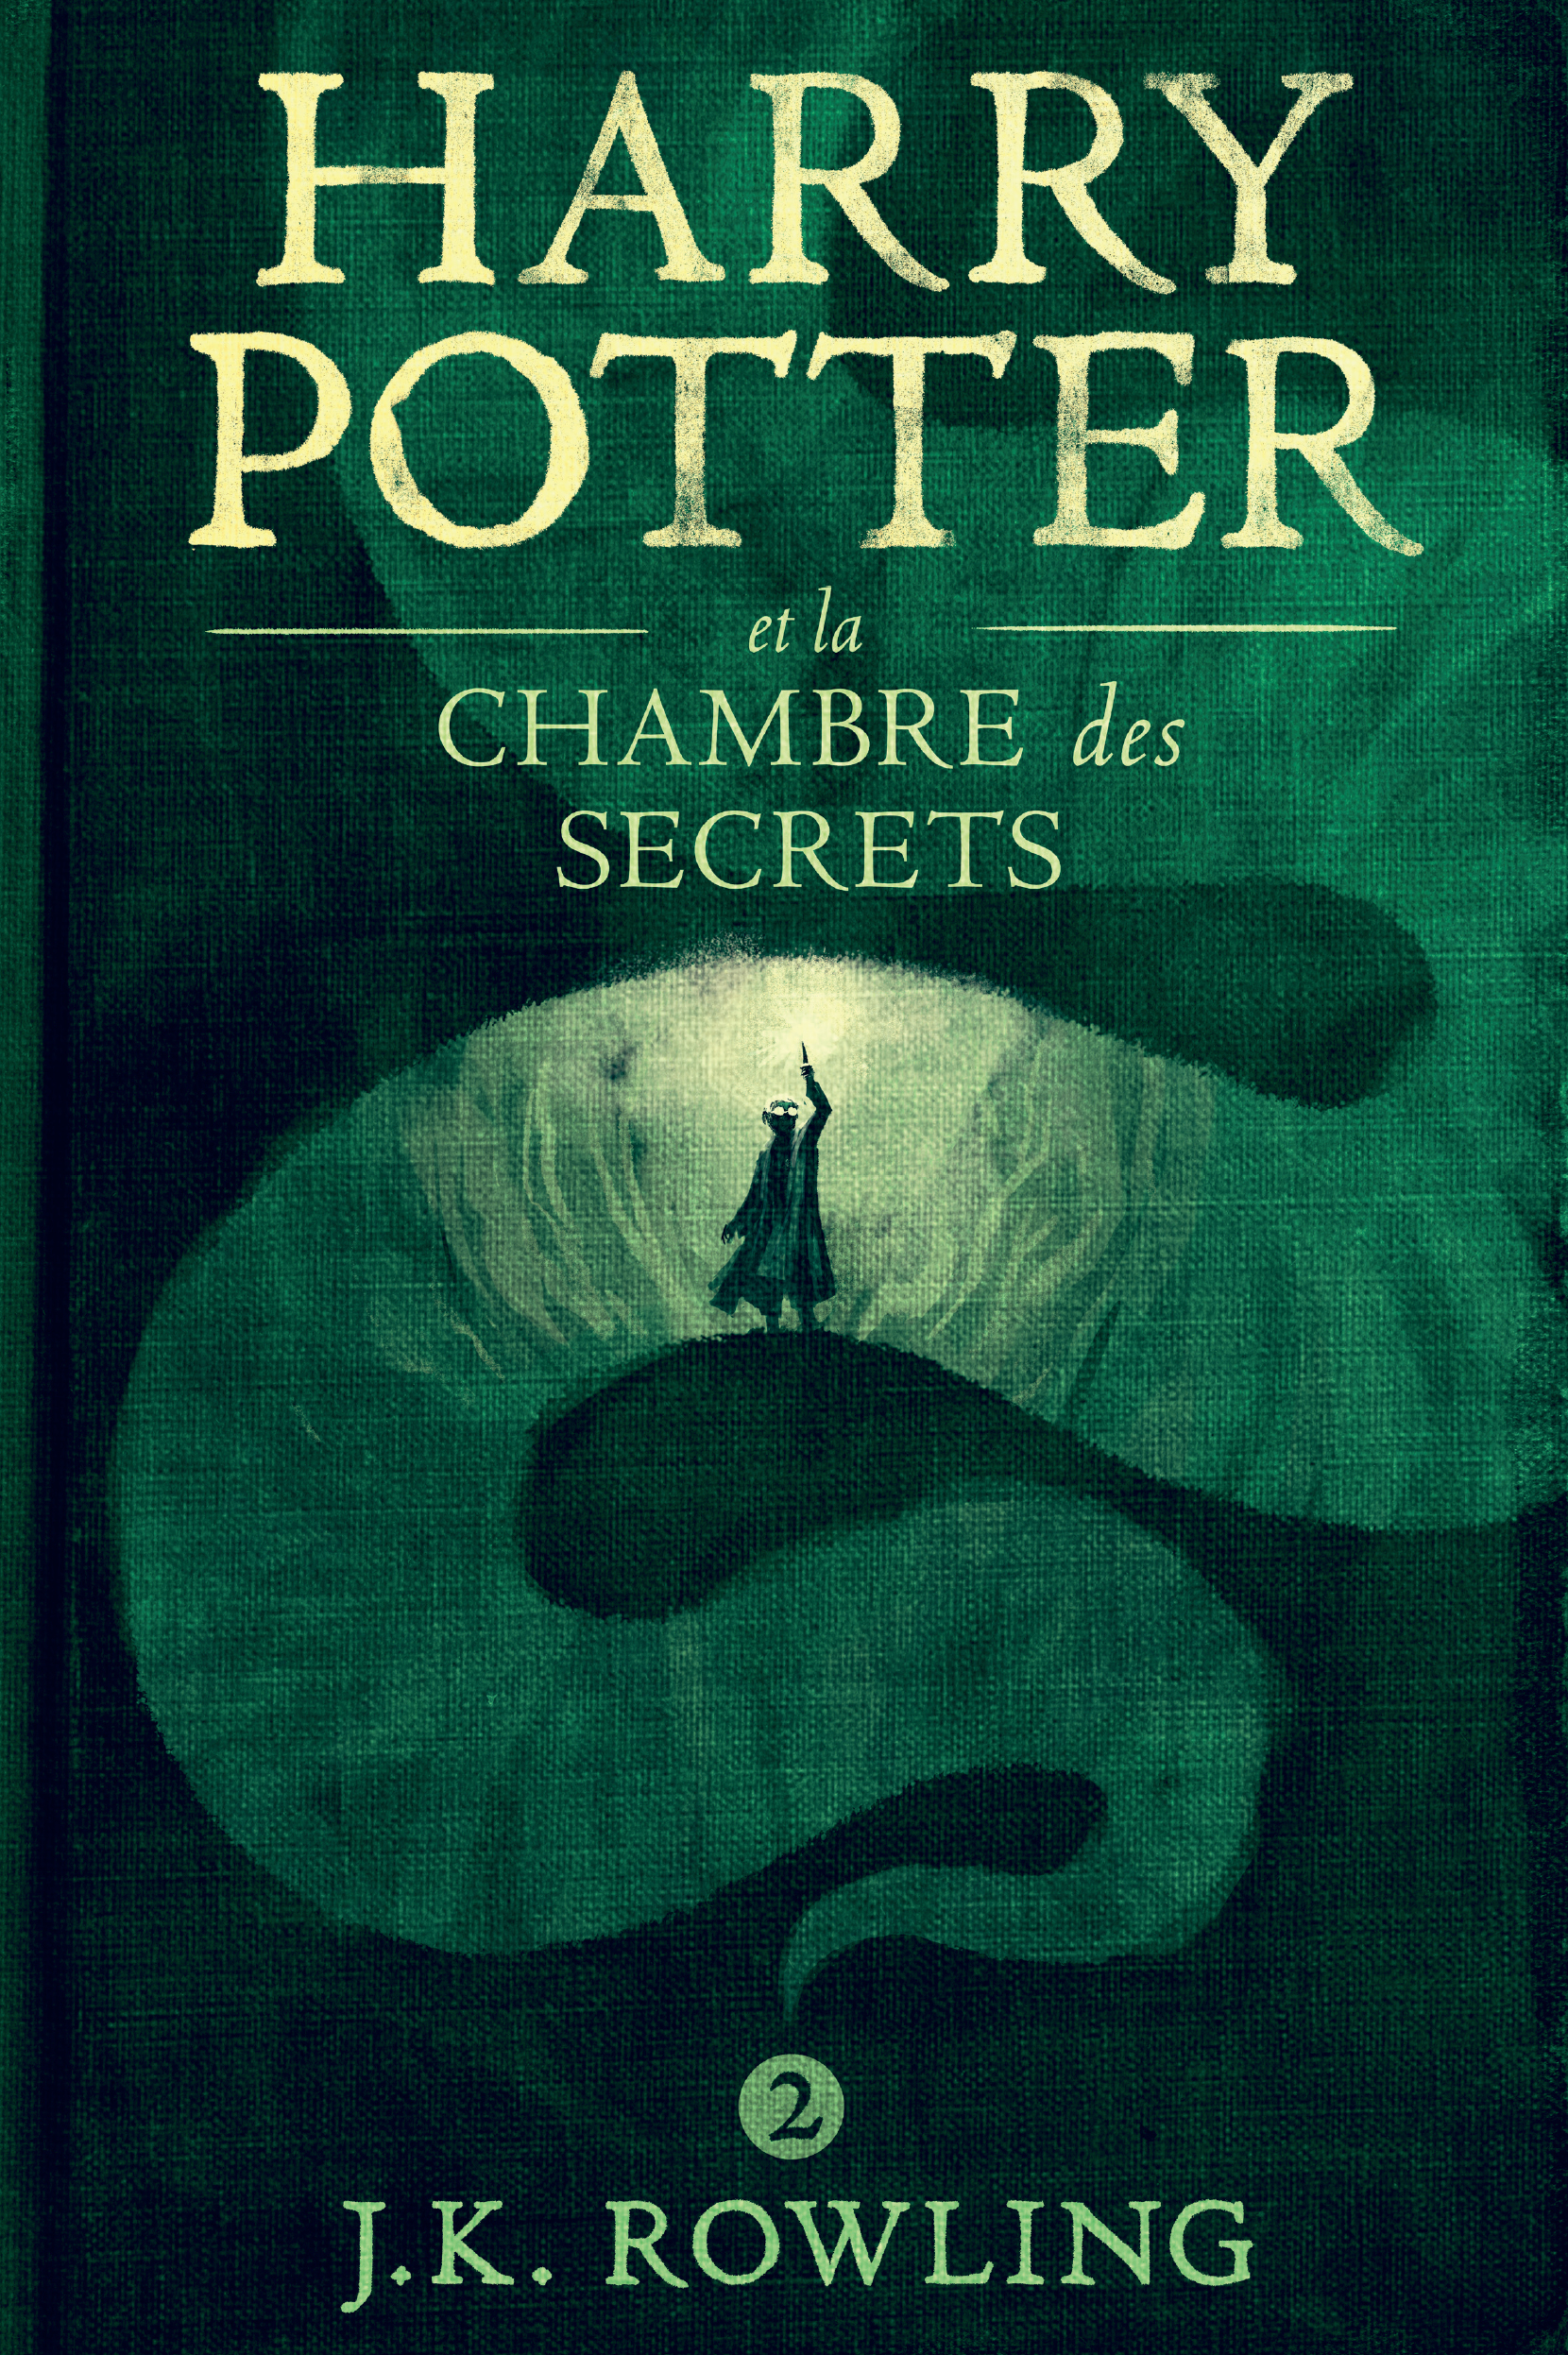 Harry potter et la chambre des secrets by j k rowling and for Chambre harry potter